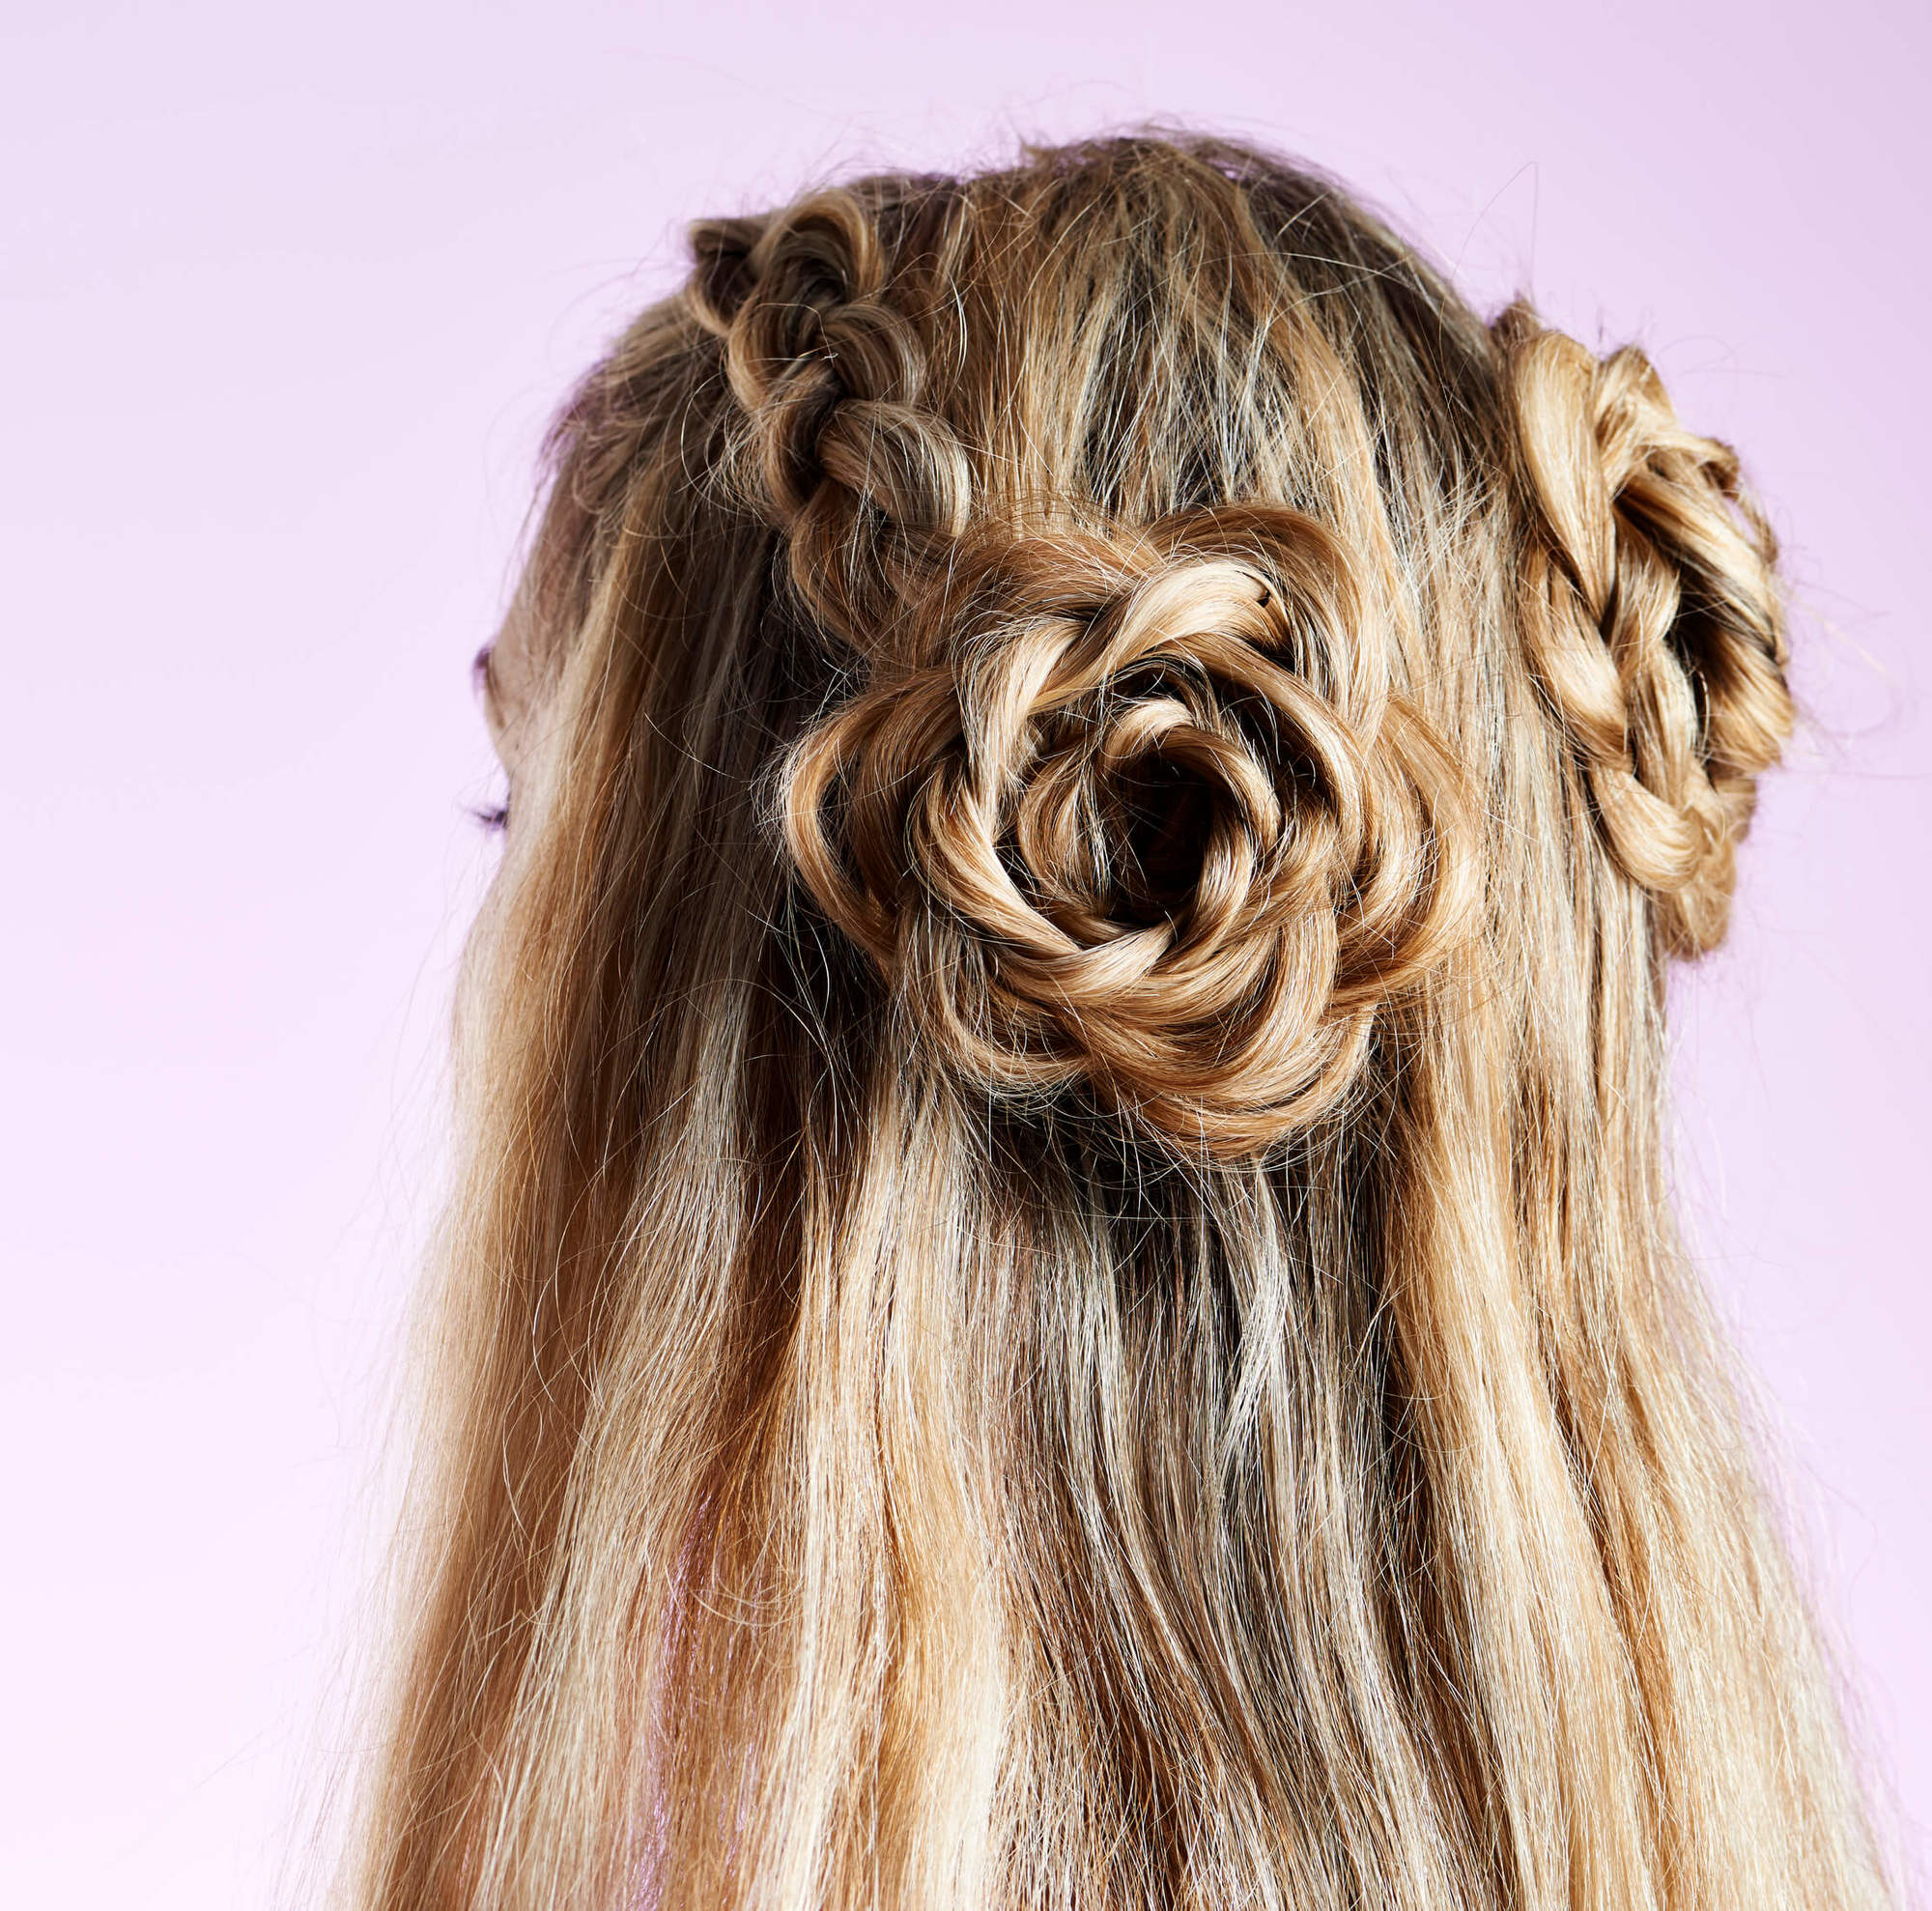 braid styles: flower braid